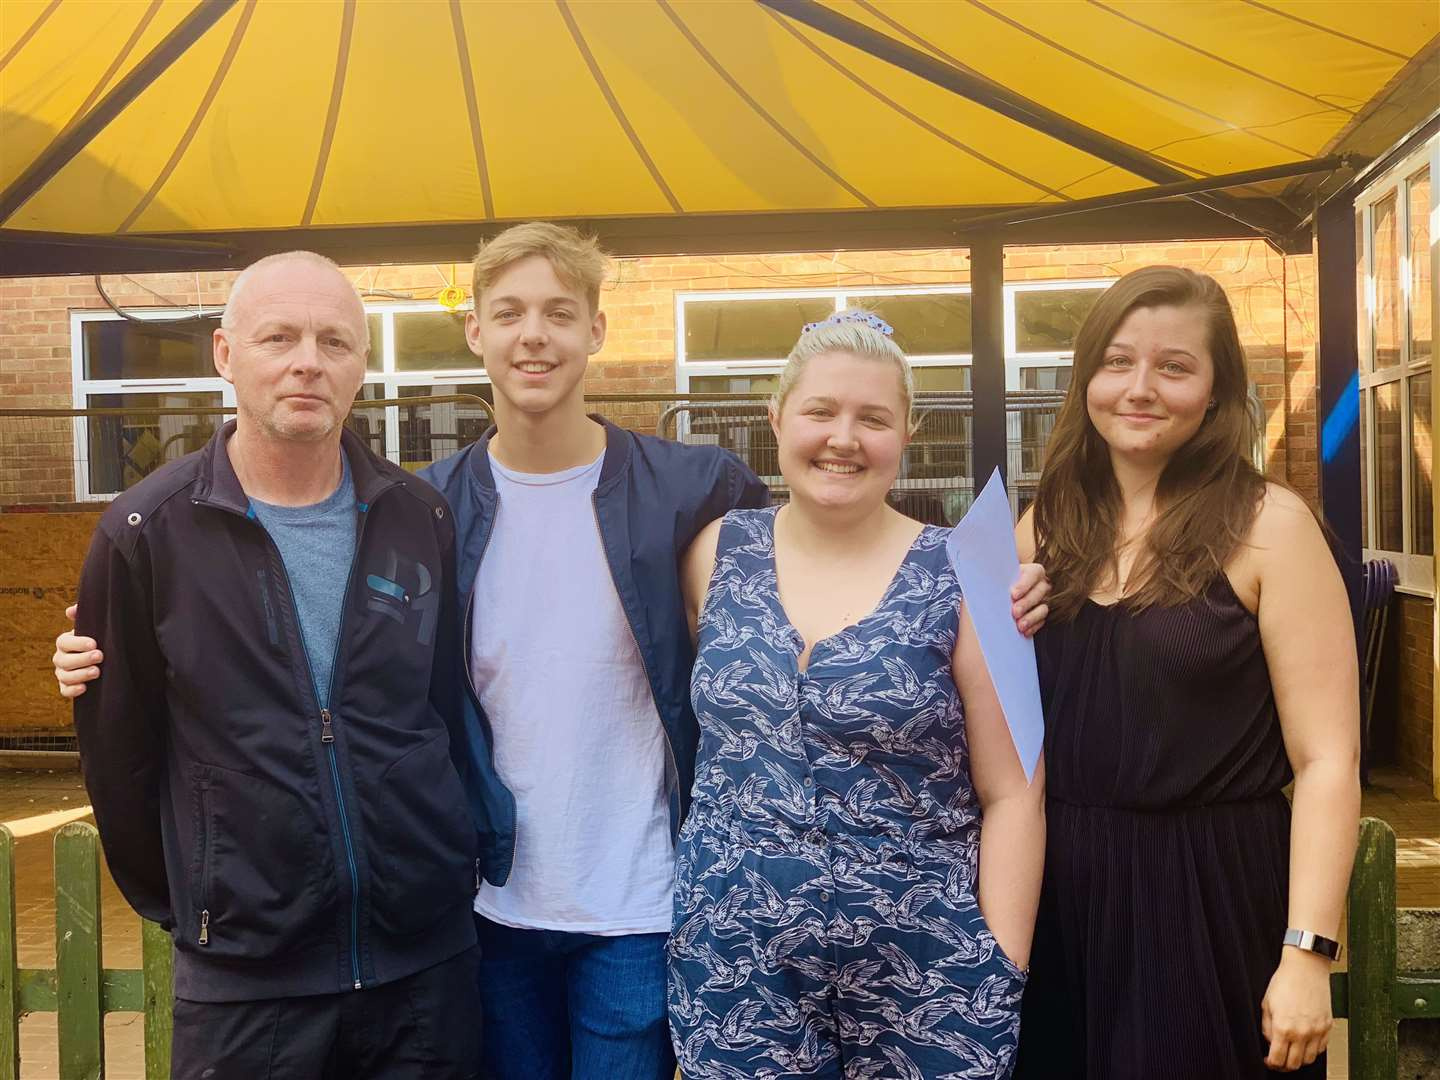 Downham Market Academy GCSEs 2019: Alife Randall, second from left, with stepfather Max Lincoln, and sisters Lilly and Alice Young (15607932)